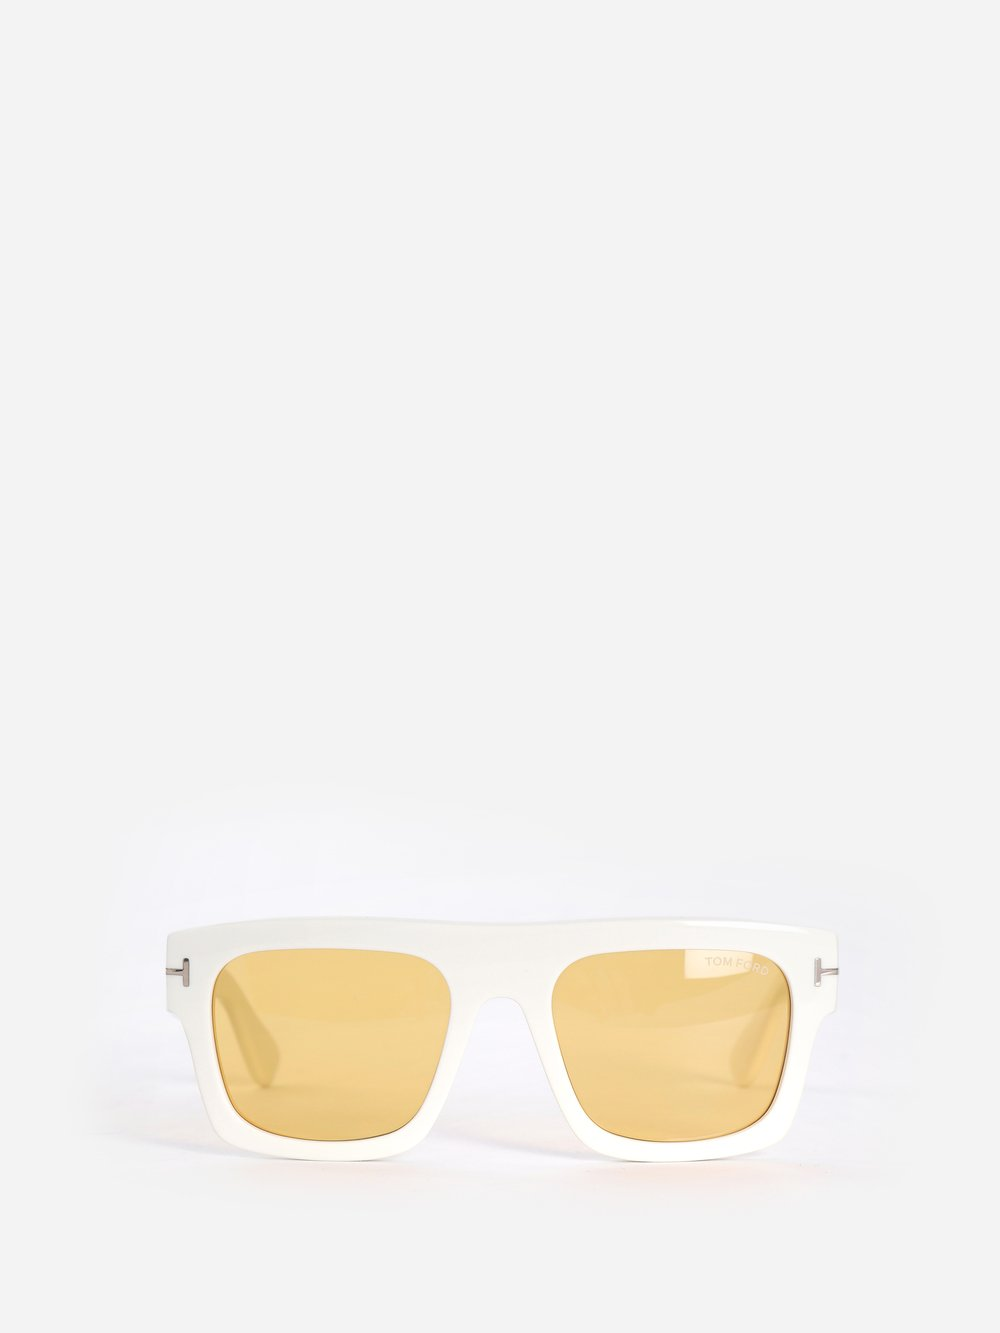 f582a0ab88 FAUSTOFT071153 25E image FAUSTOFT071153 25E image. Tom Ford. Eyewear